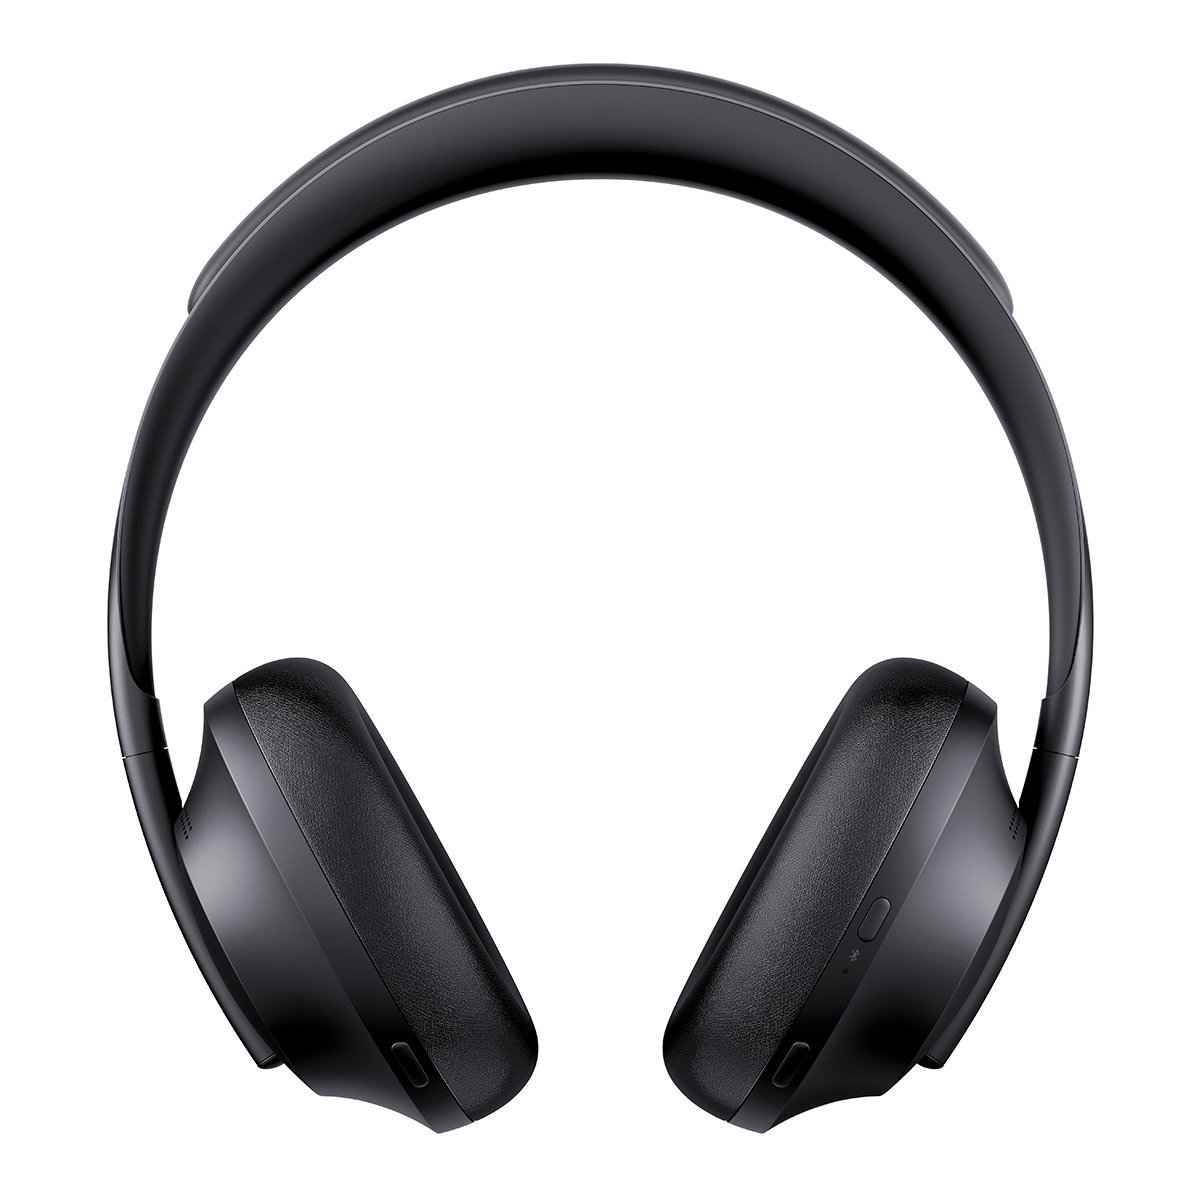 Bose Noise Cancelling Headphones 700 with Alexa and Google